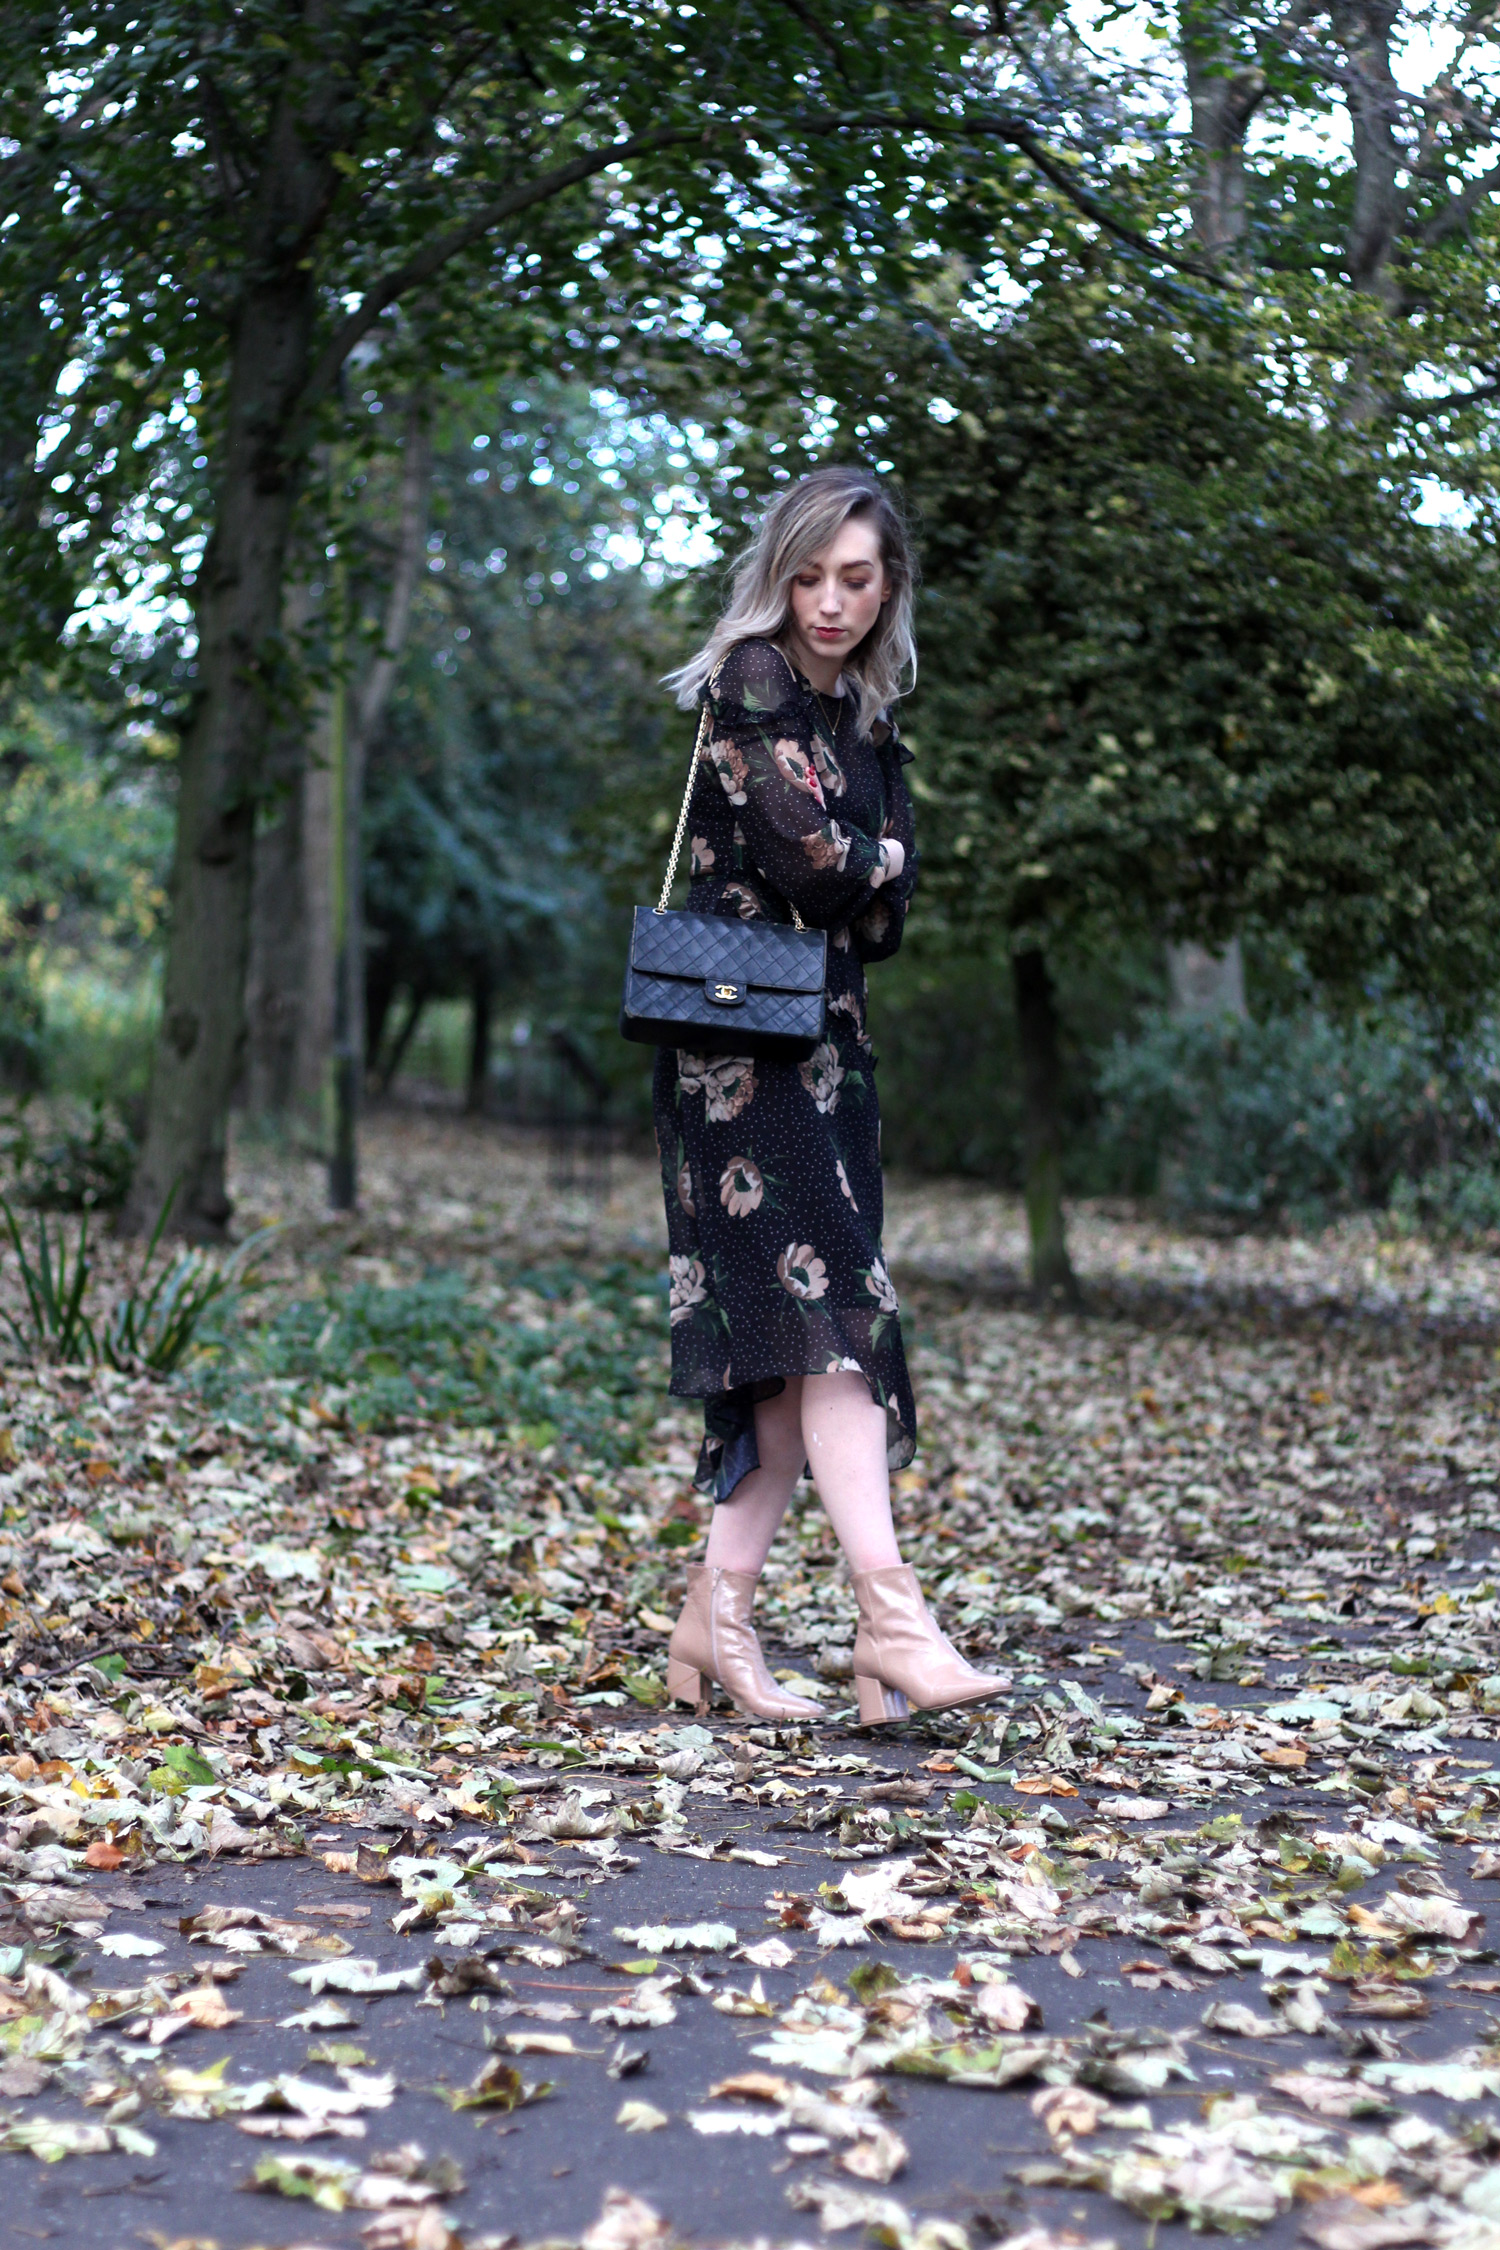 next-floral-midi-dress-nude-leather-boots-vintage-chanel-autumn-outfit-8